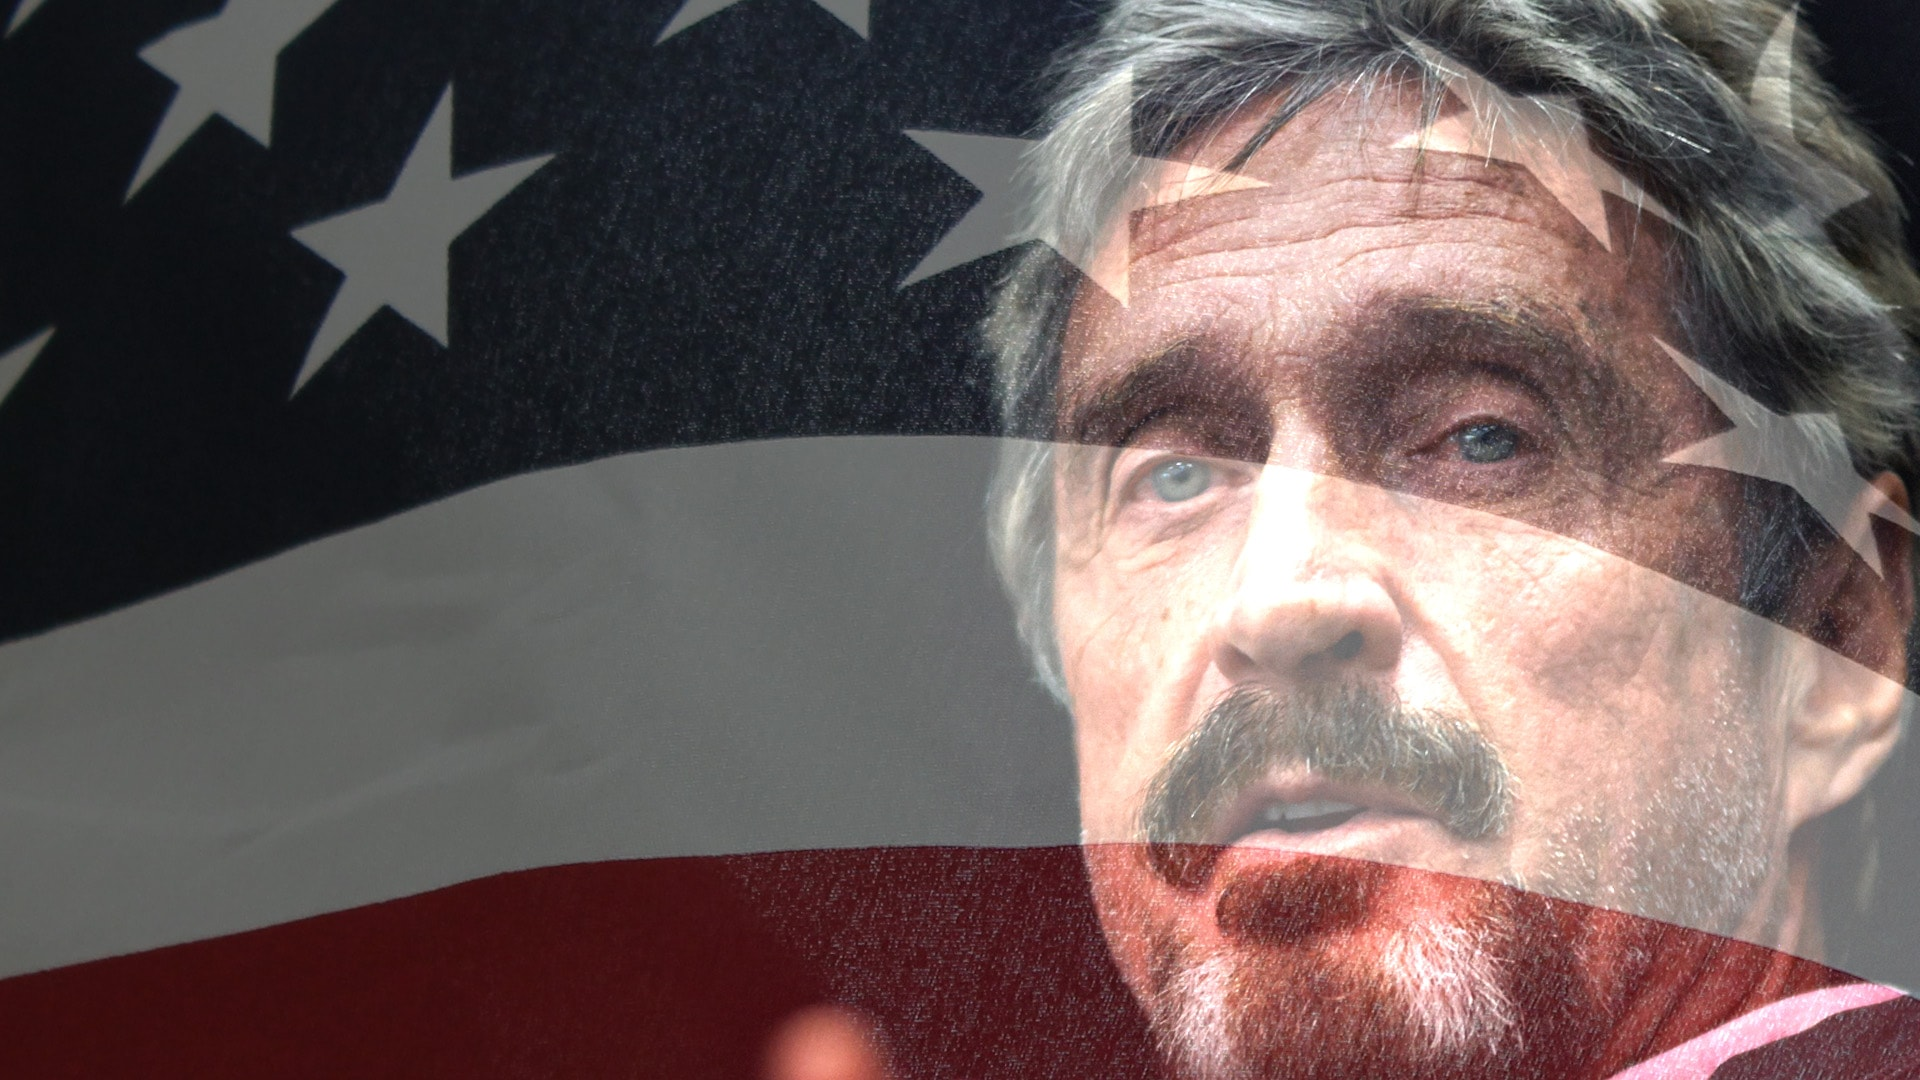 McAfee and Libertarian Party Appearances